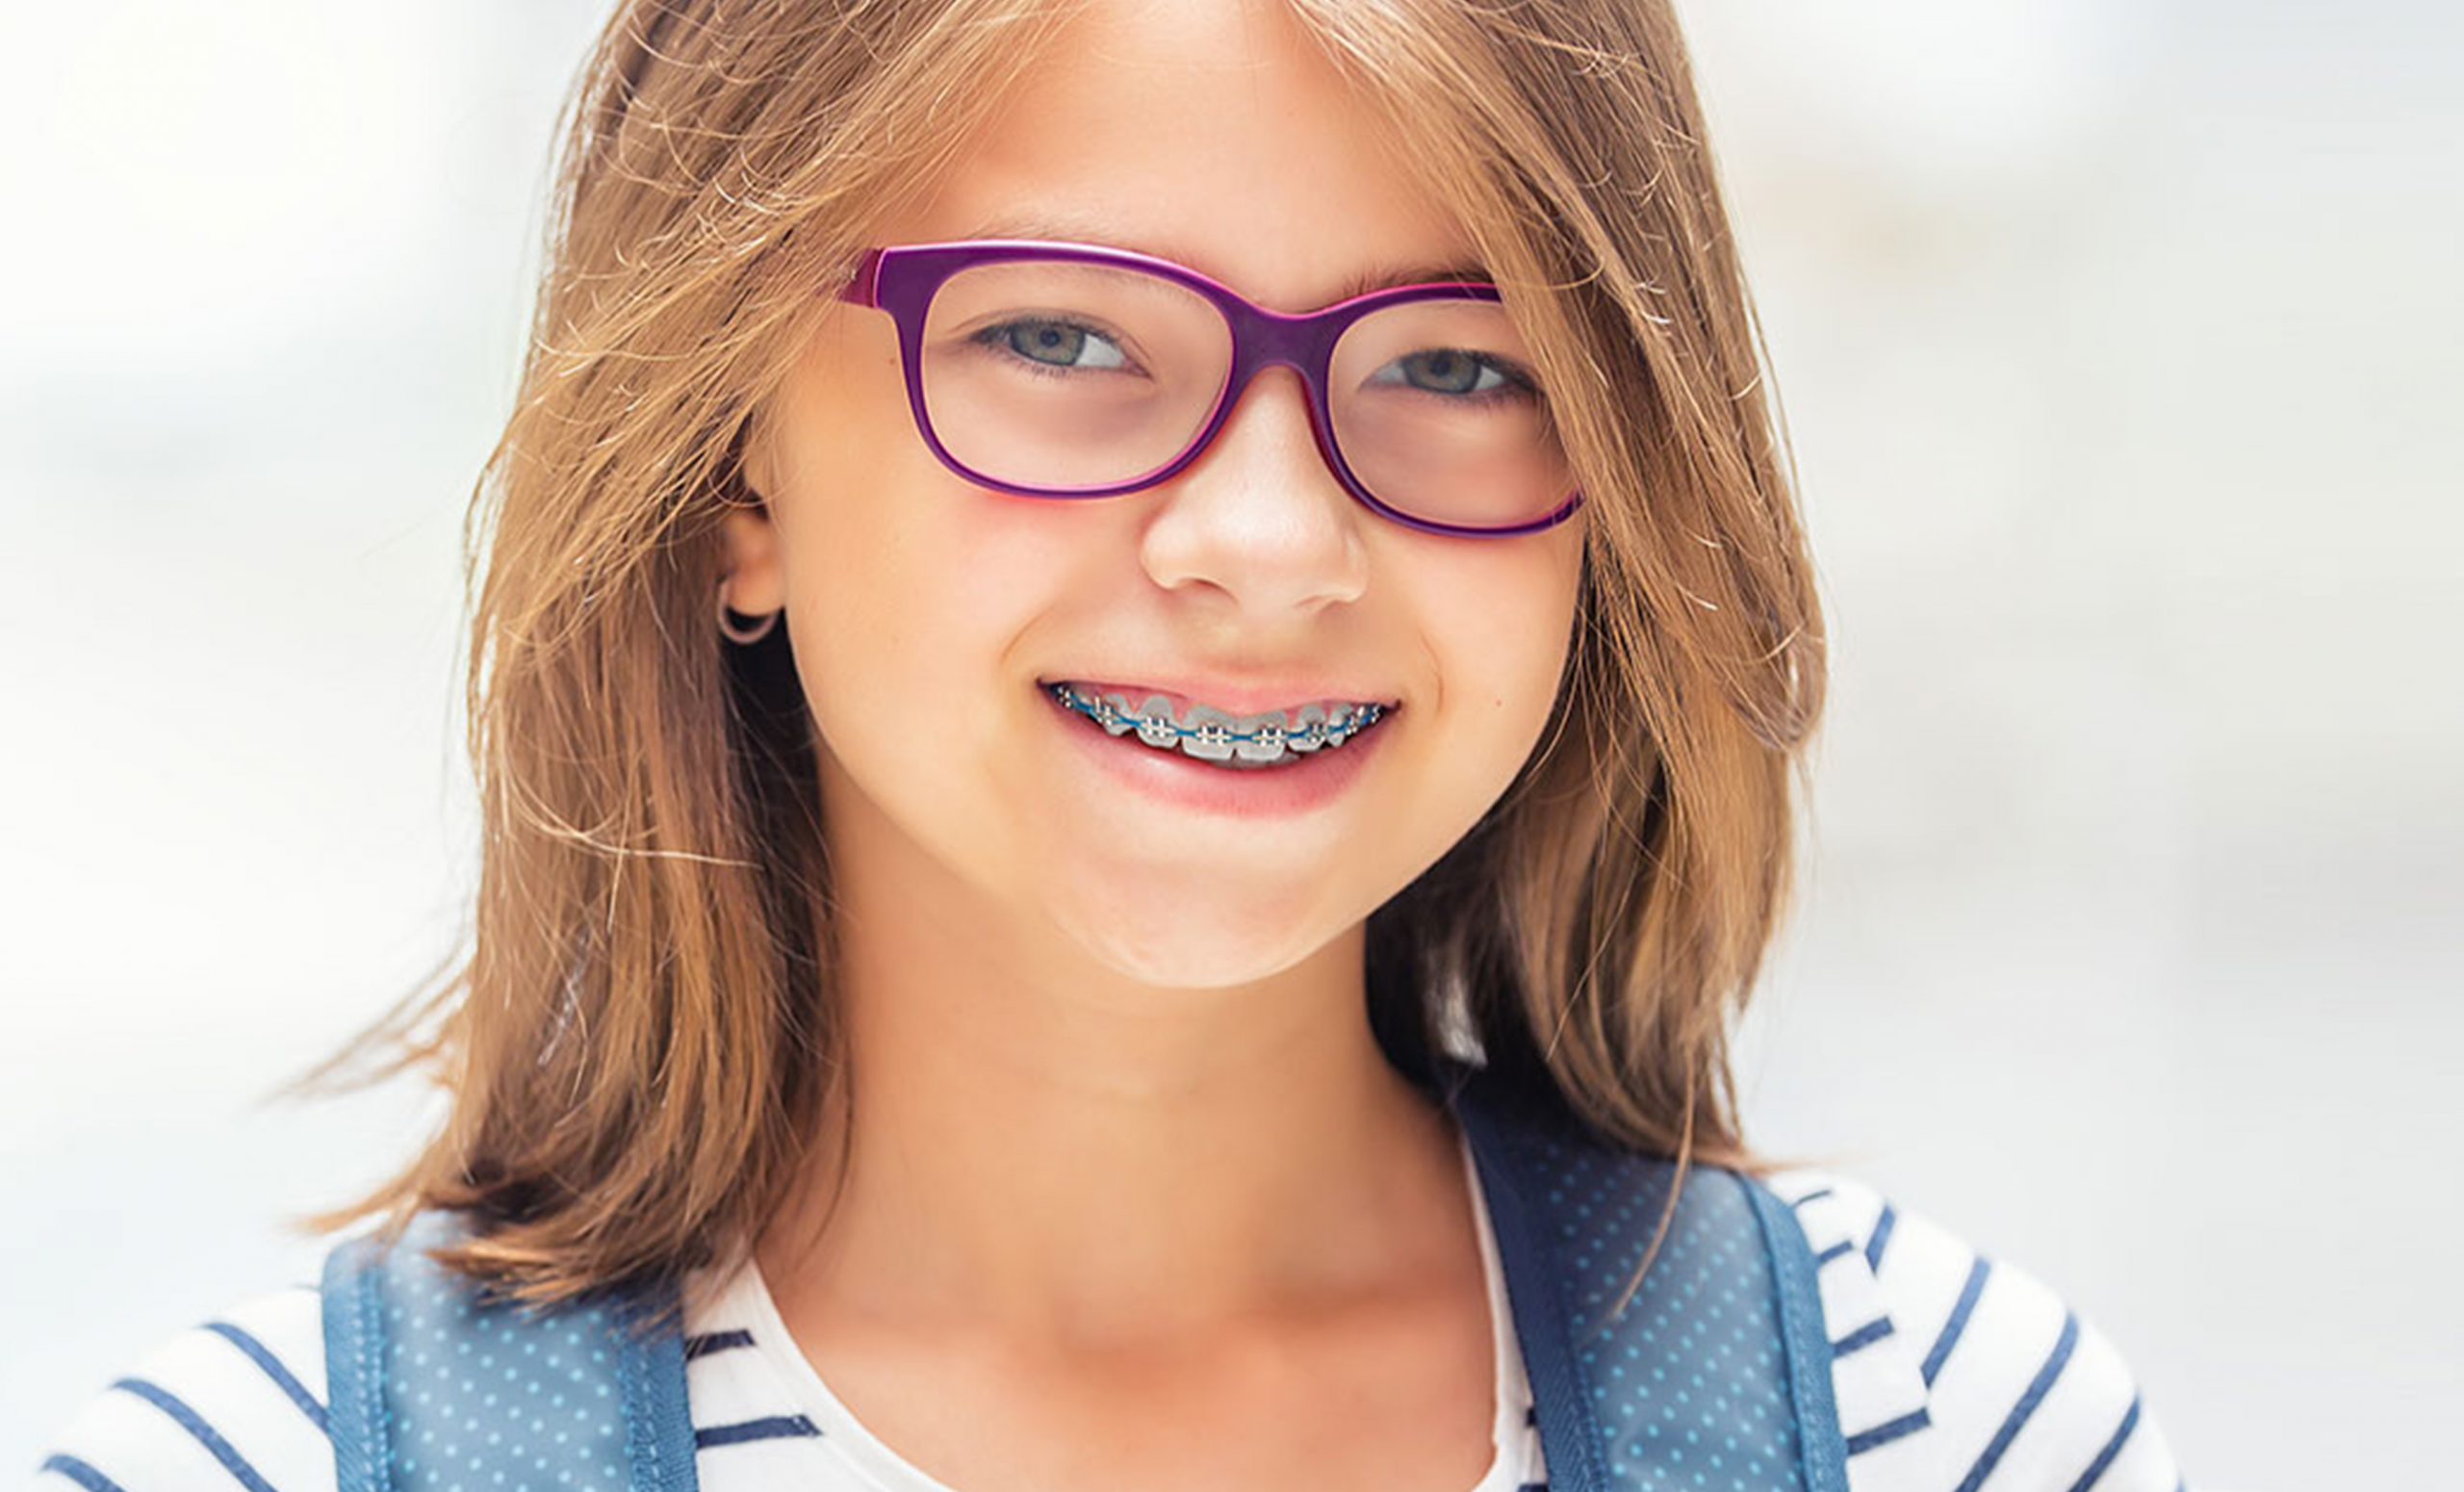 Now That I Have Braces, What Can I Eat? – Dr. Whitlock